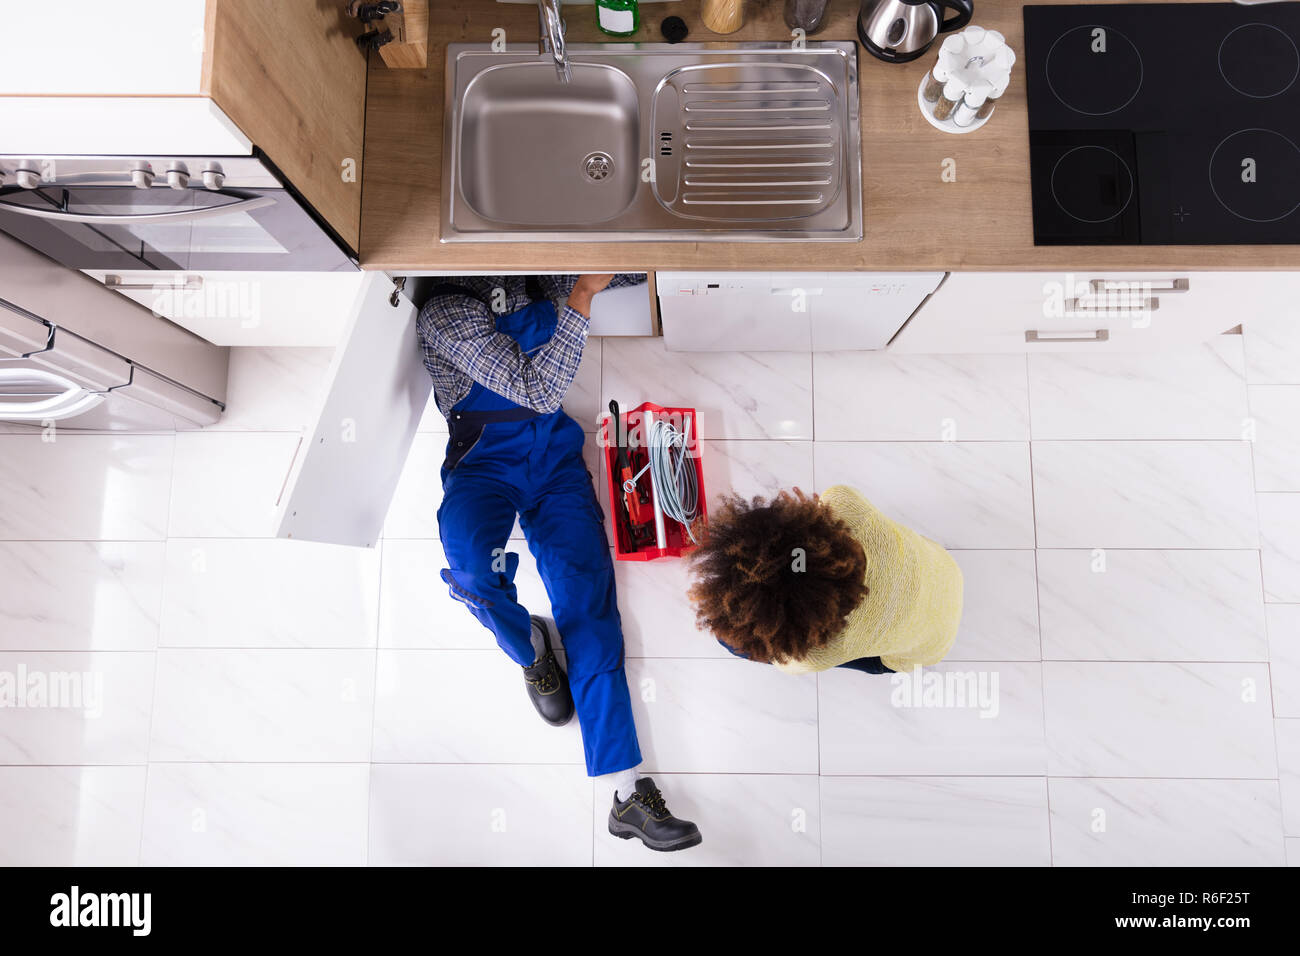 Plumber Repairing Sink In Kitchen - Stock Image